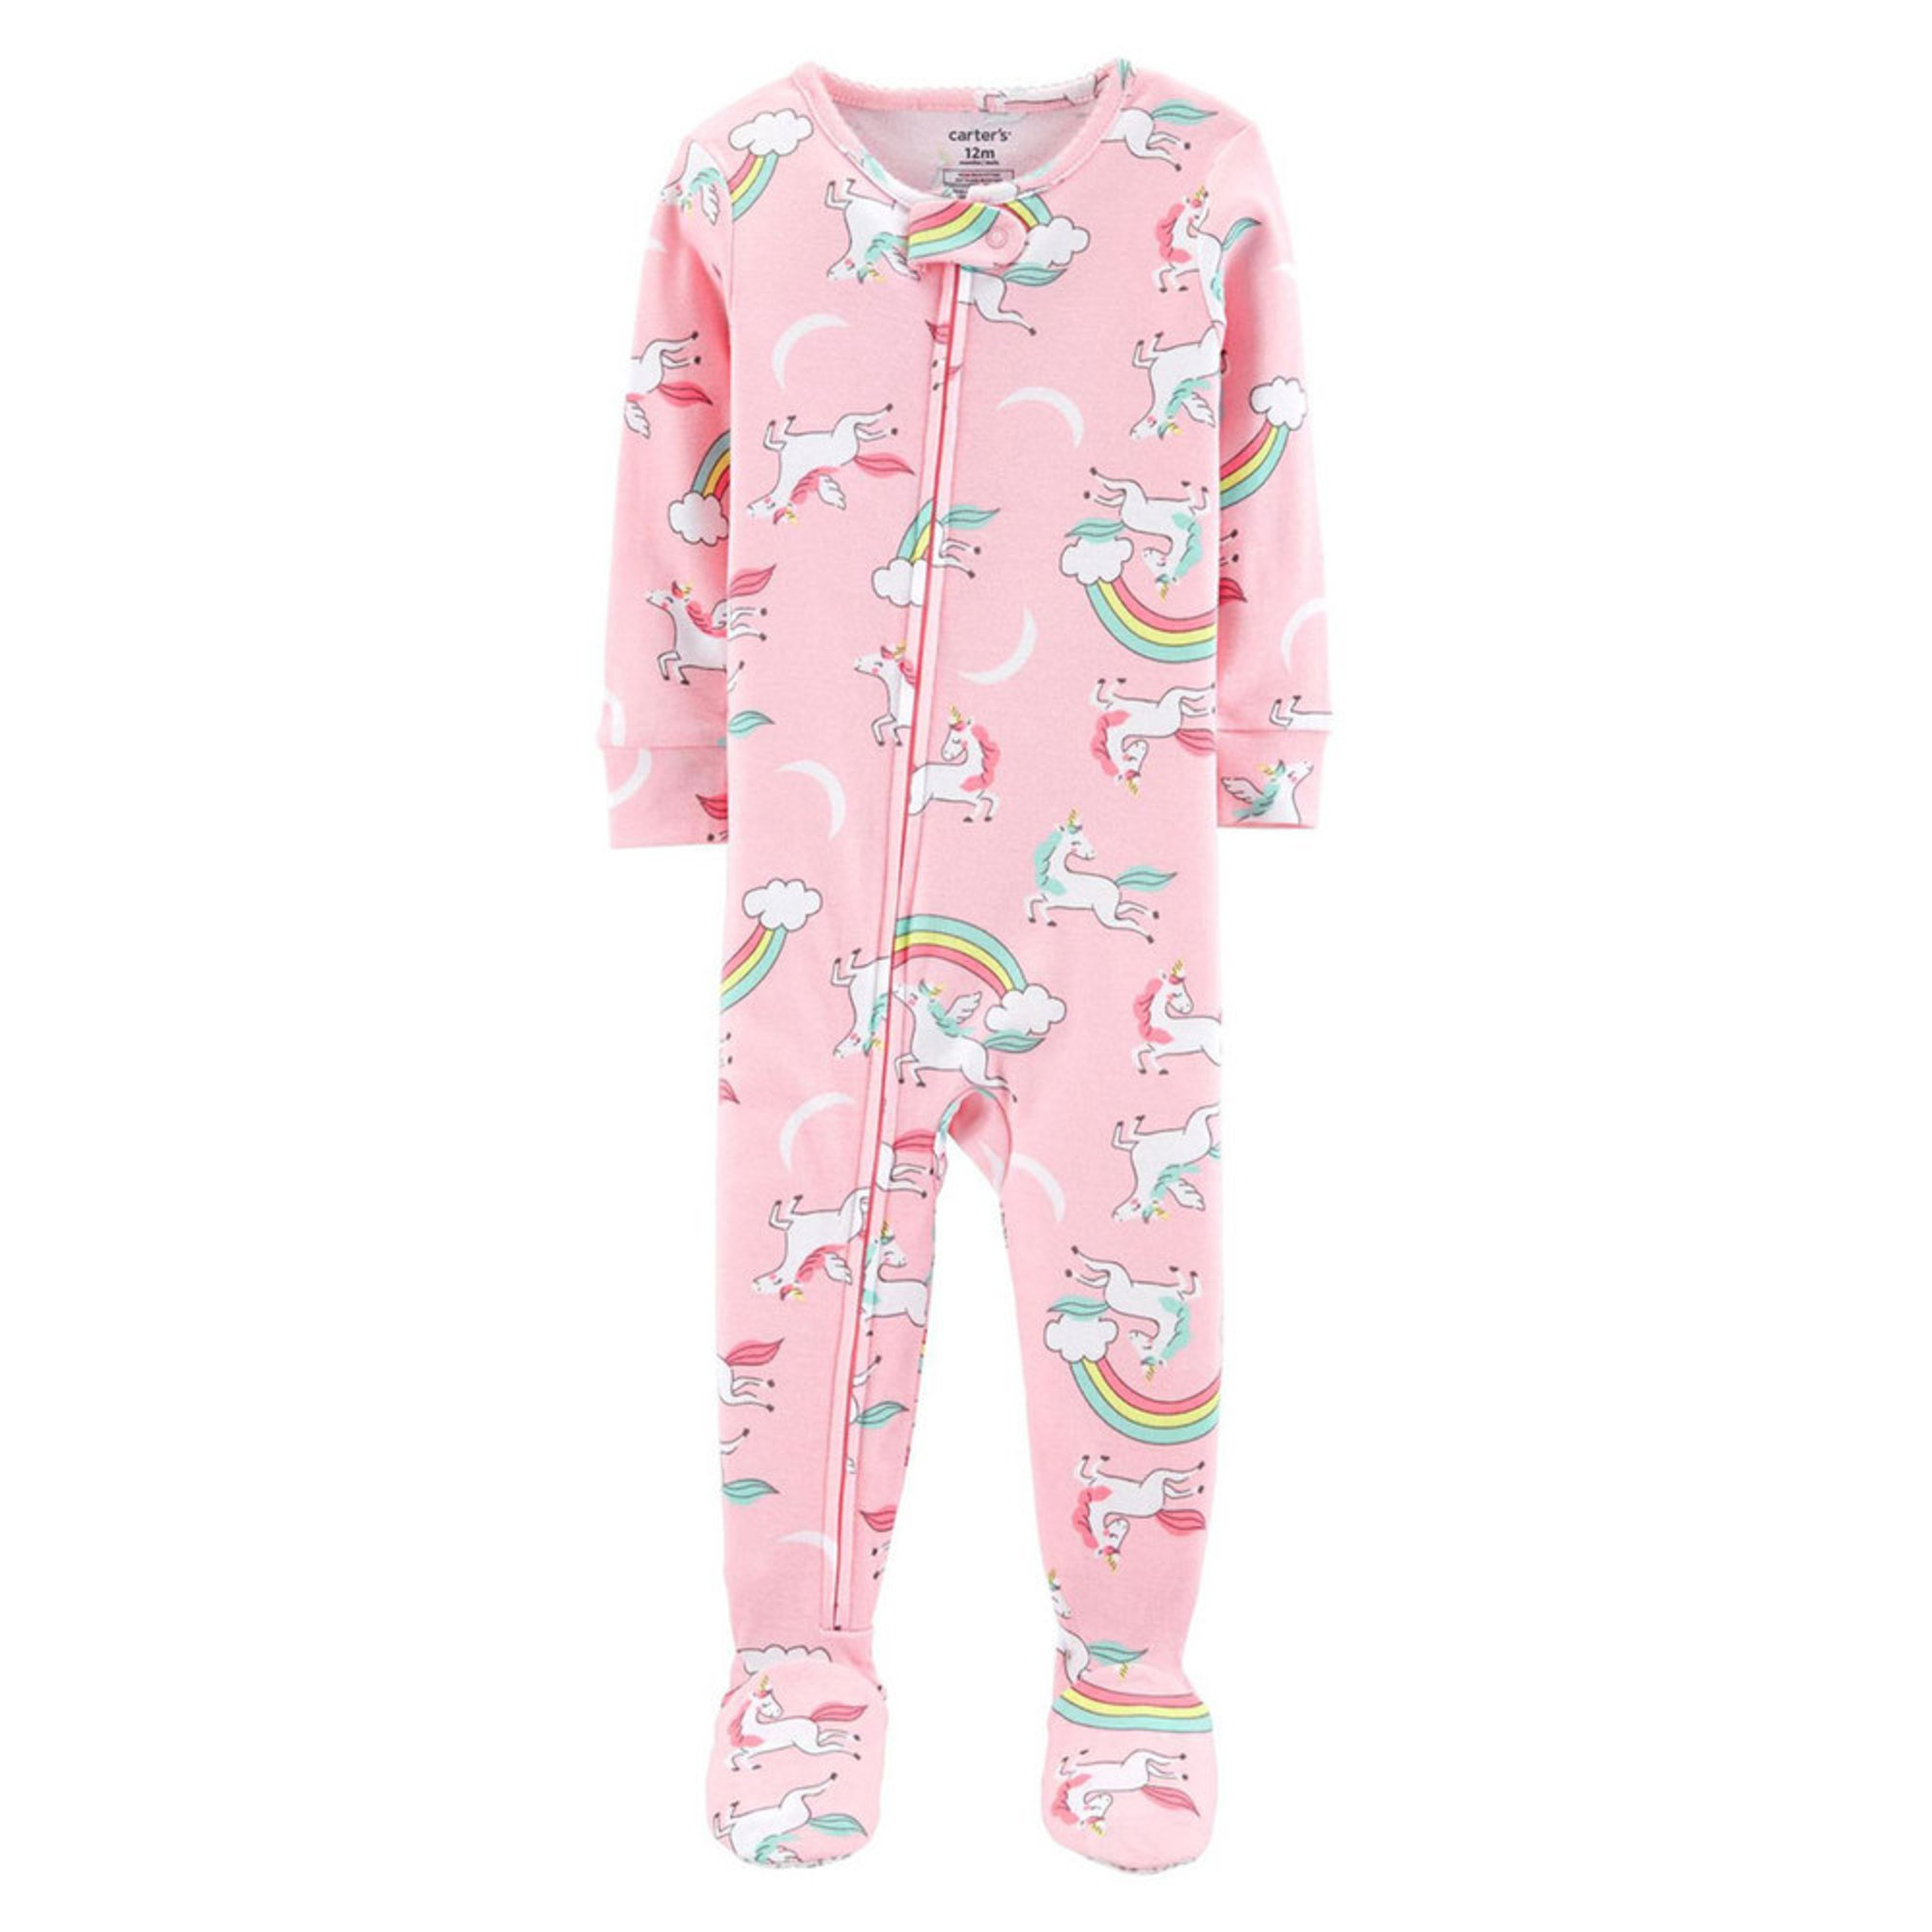 96e62cfdb Carter's Toddler Girls' Rainbow Unicorn Print Pajamas | Little Girls ...